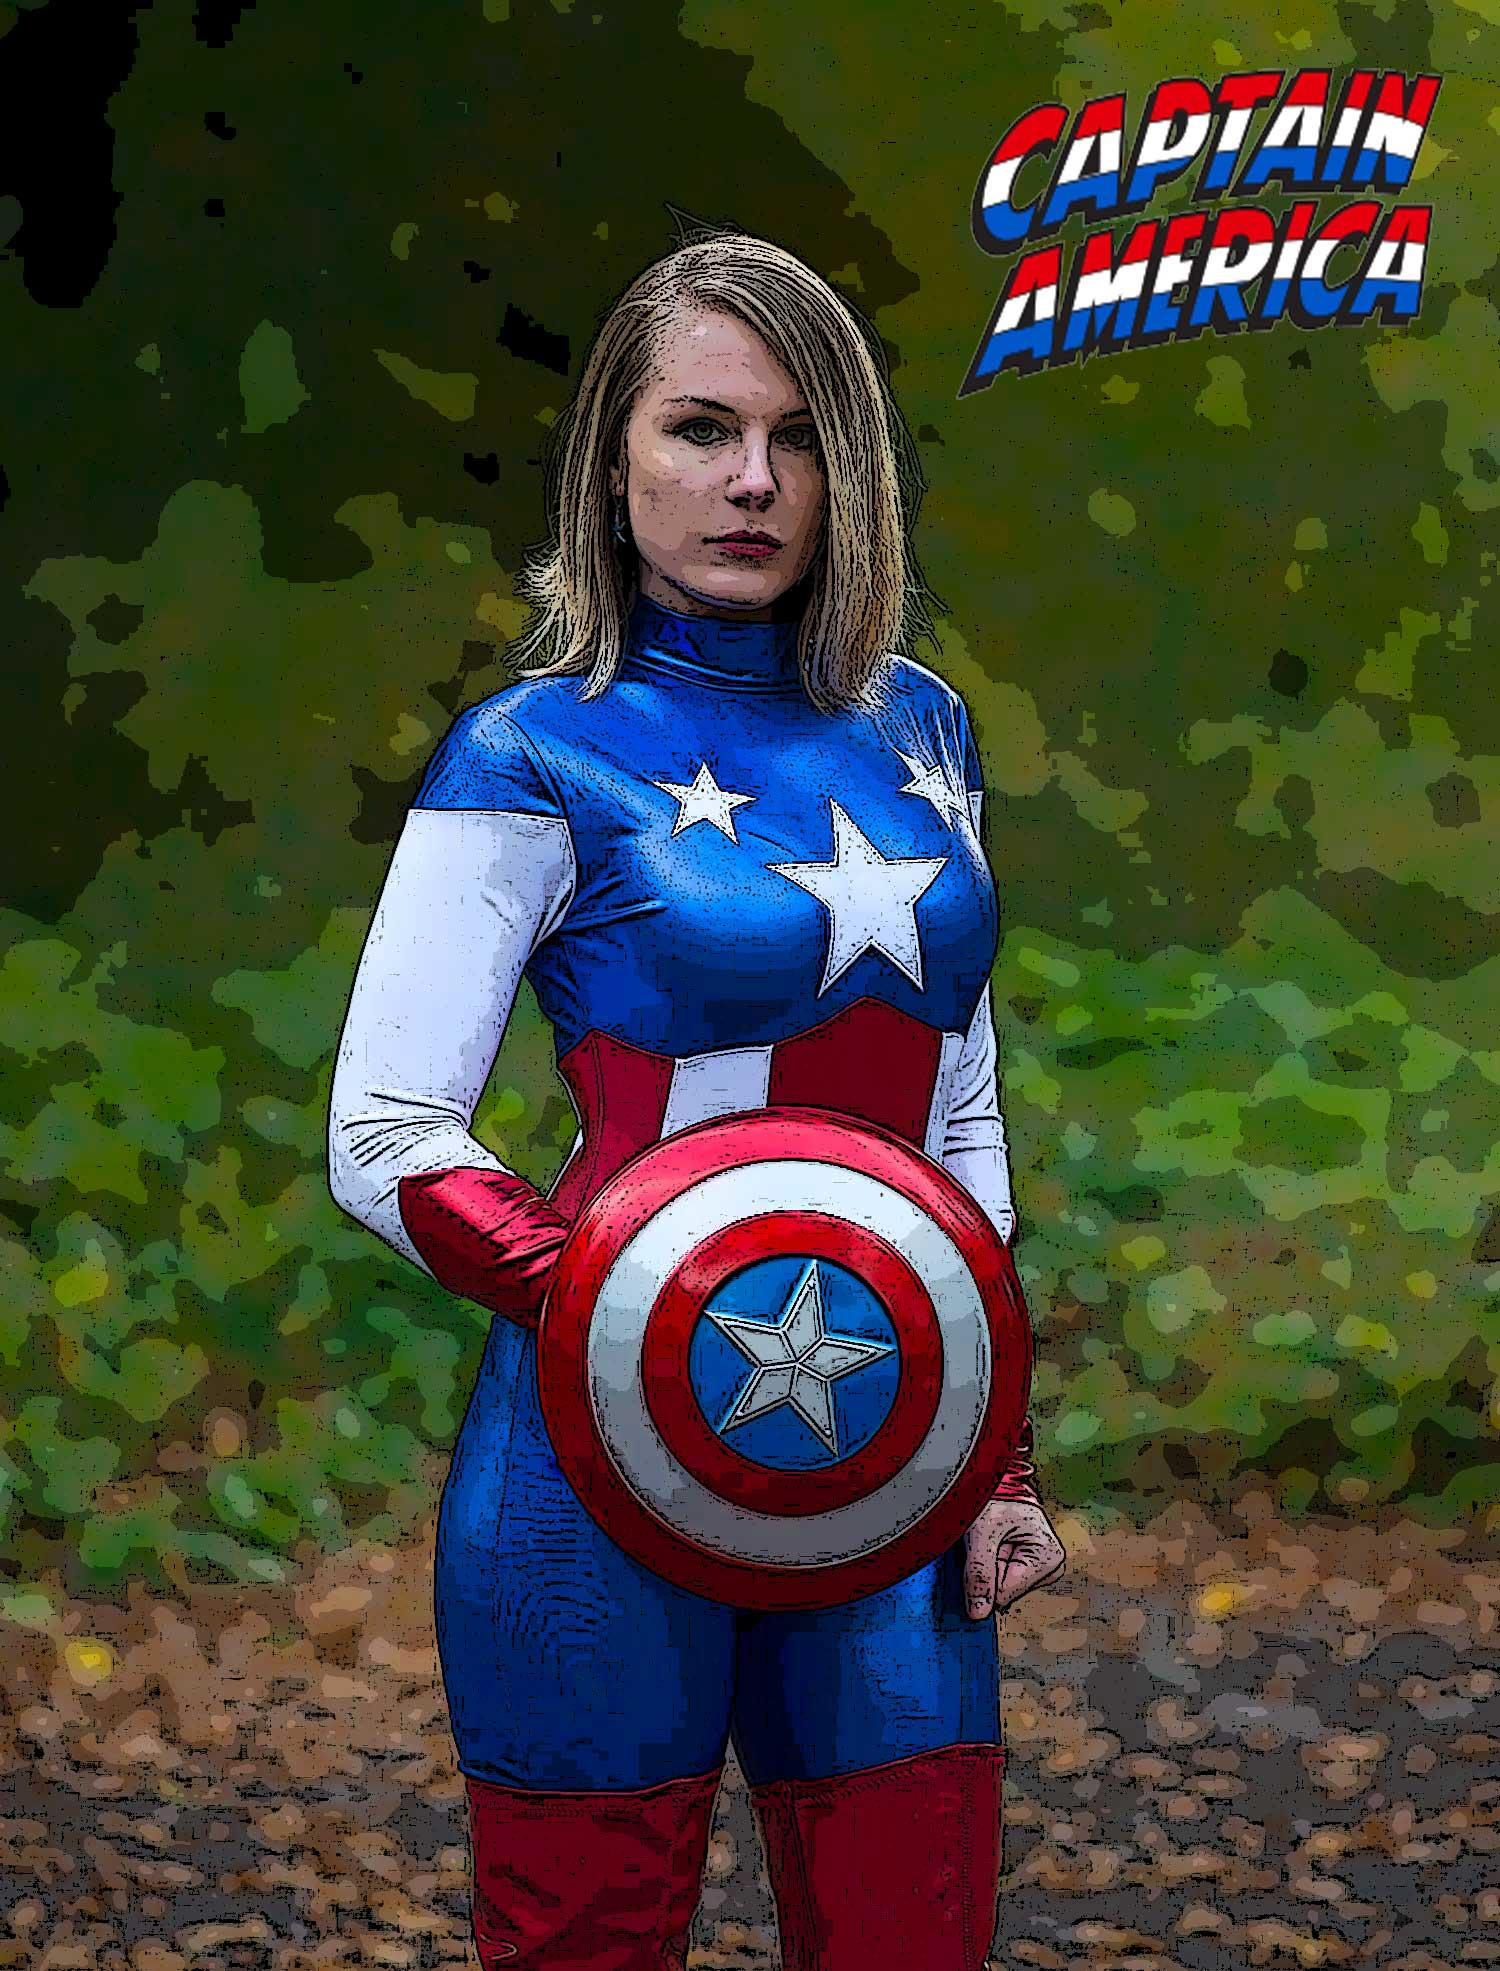 lorna-burford-miss-captain-america-costume-outfit-comic-halloween